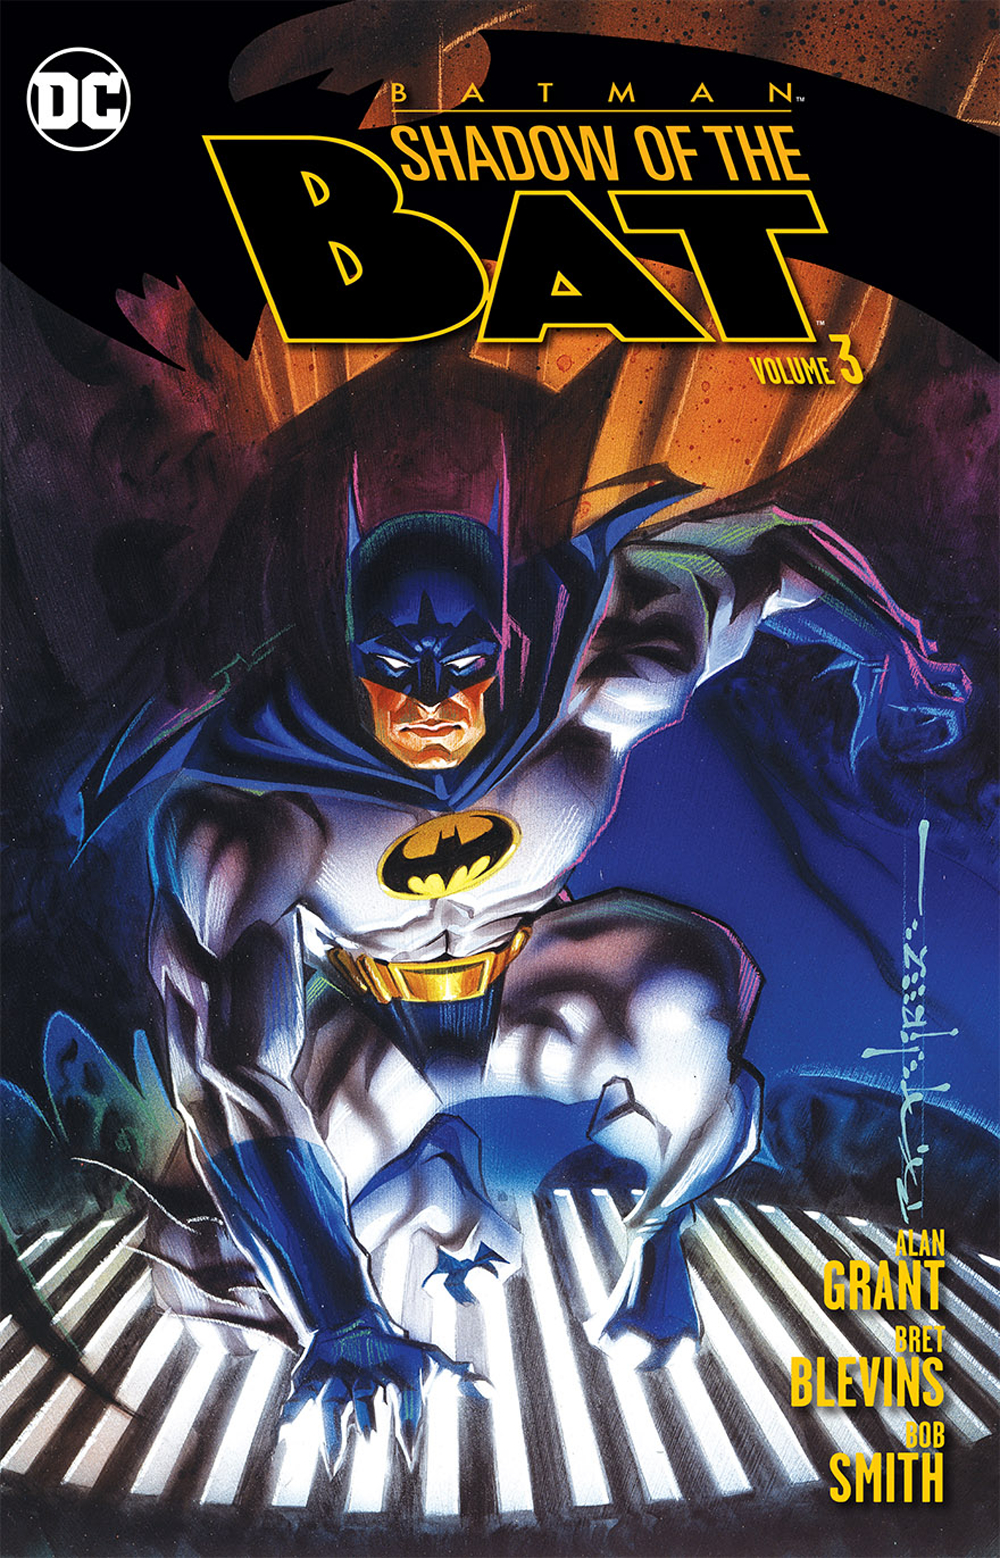 BATMAN SHADOW OF THE BAT TP VOL 03